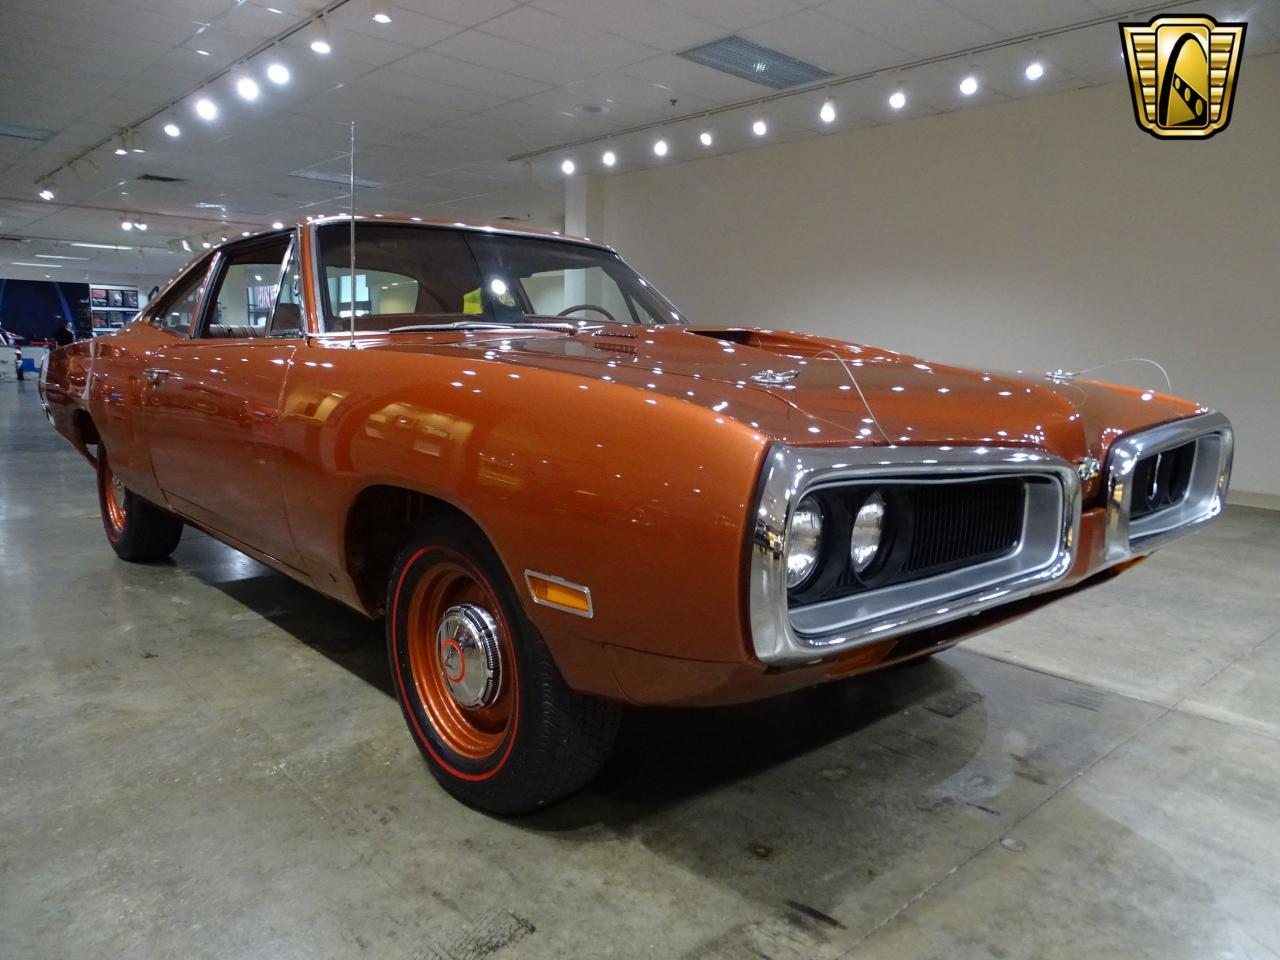 Large Picture of '70 Super Bee located in O'Fallon Illinois - $61,000.00 - QB4W